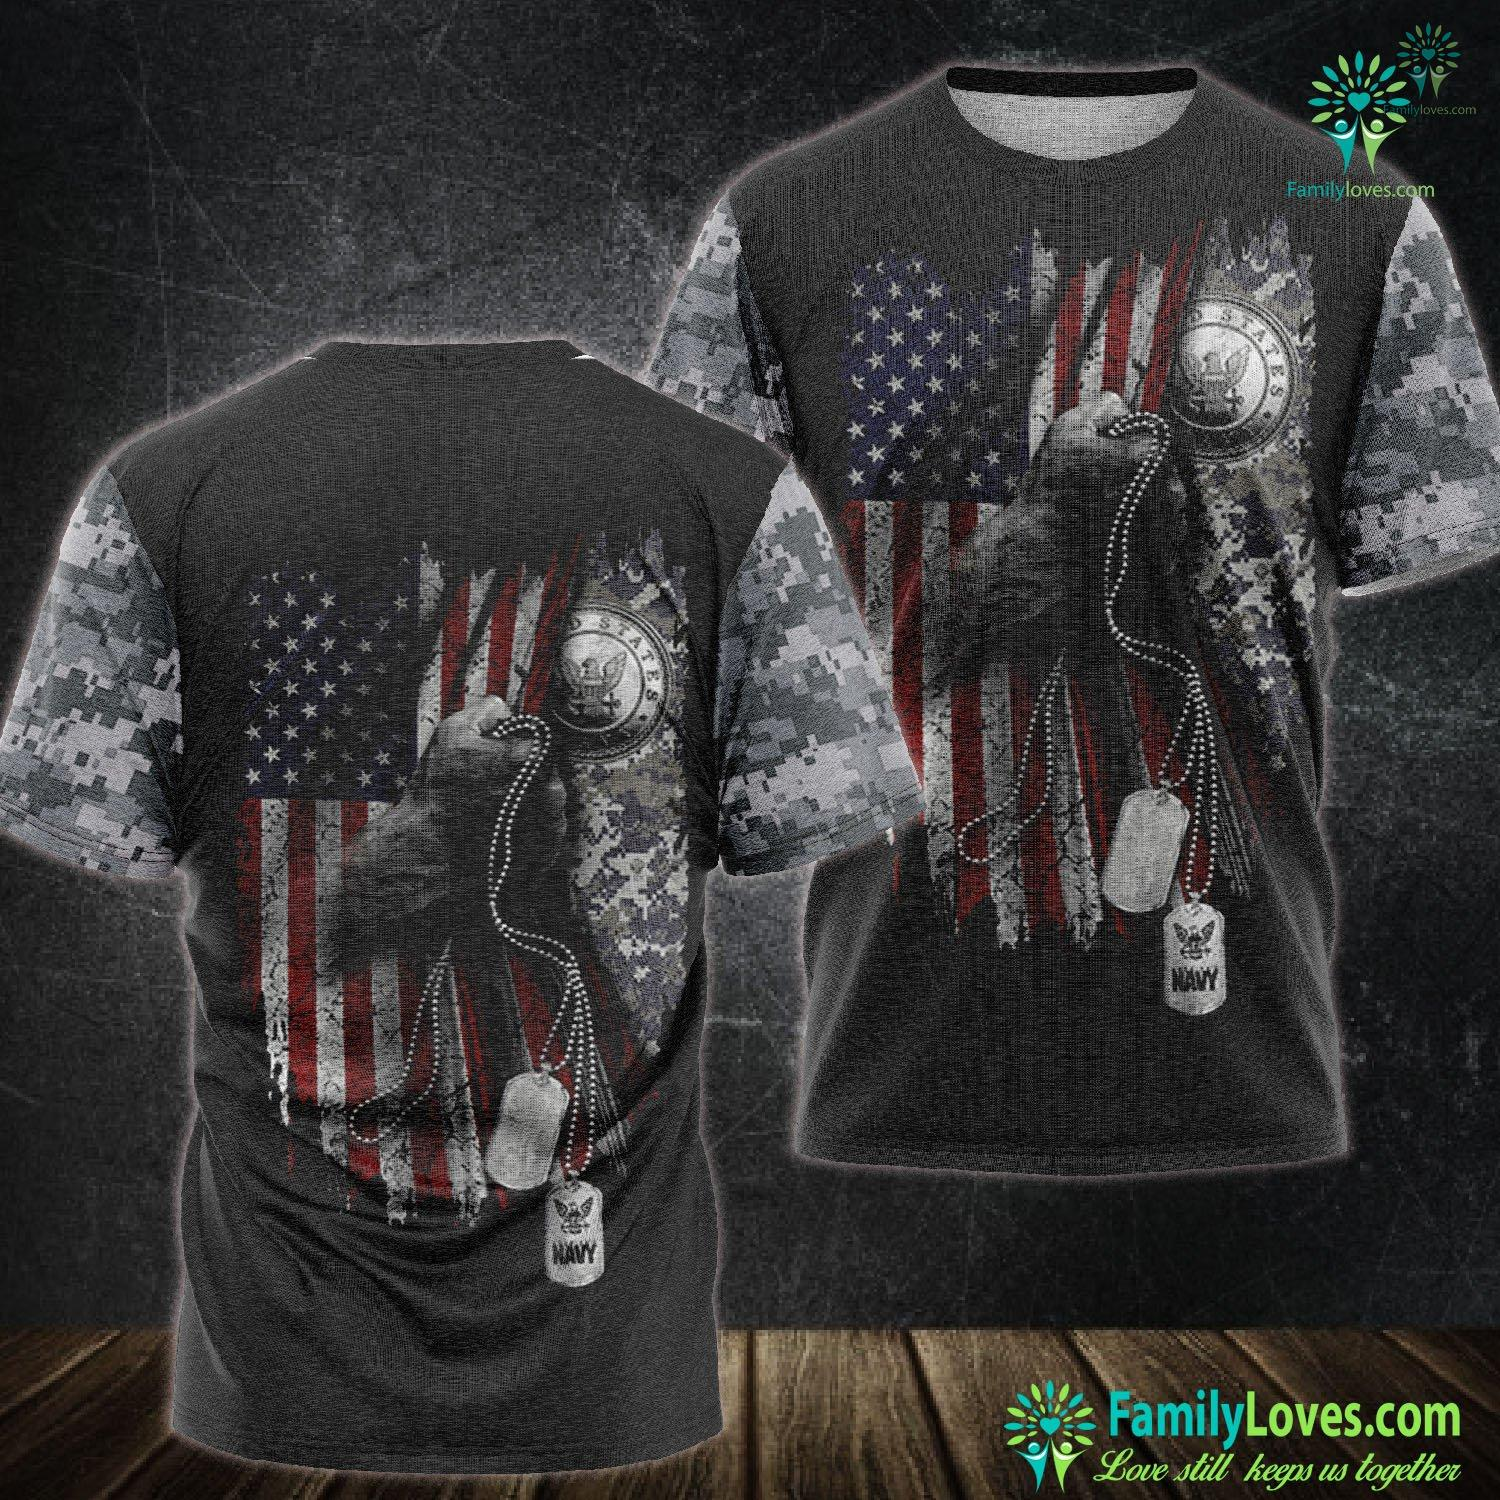 Soldier Us Navy 3D All Over Printed Tshirt Familyloves.com